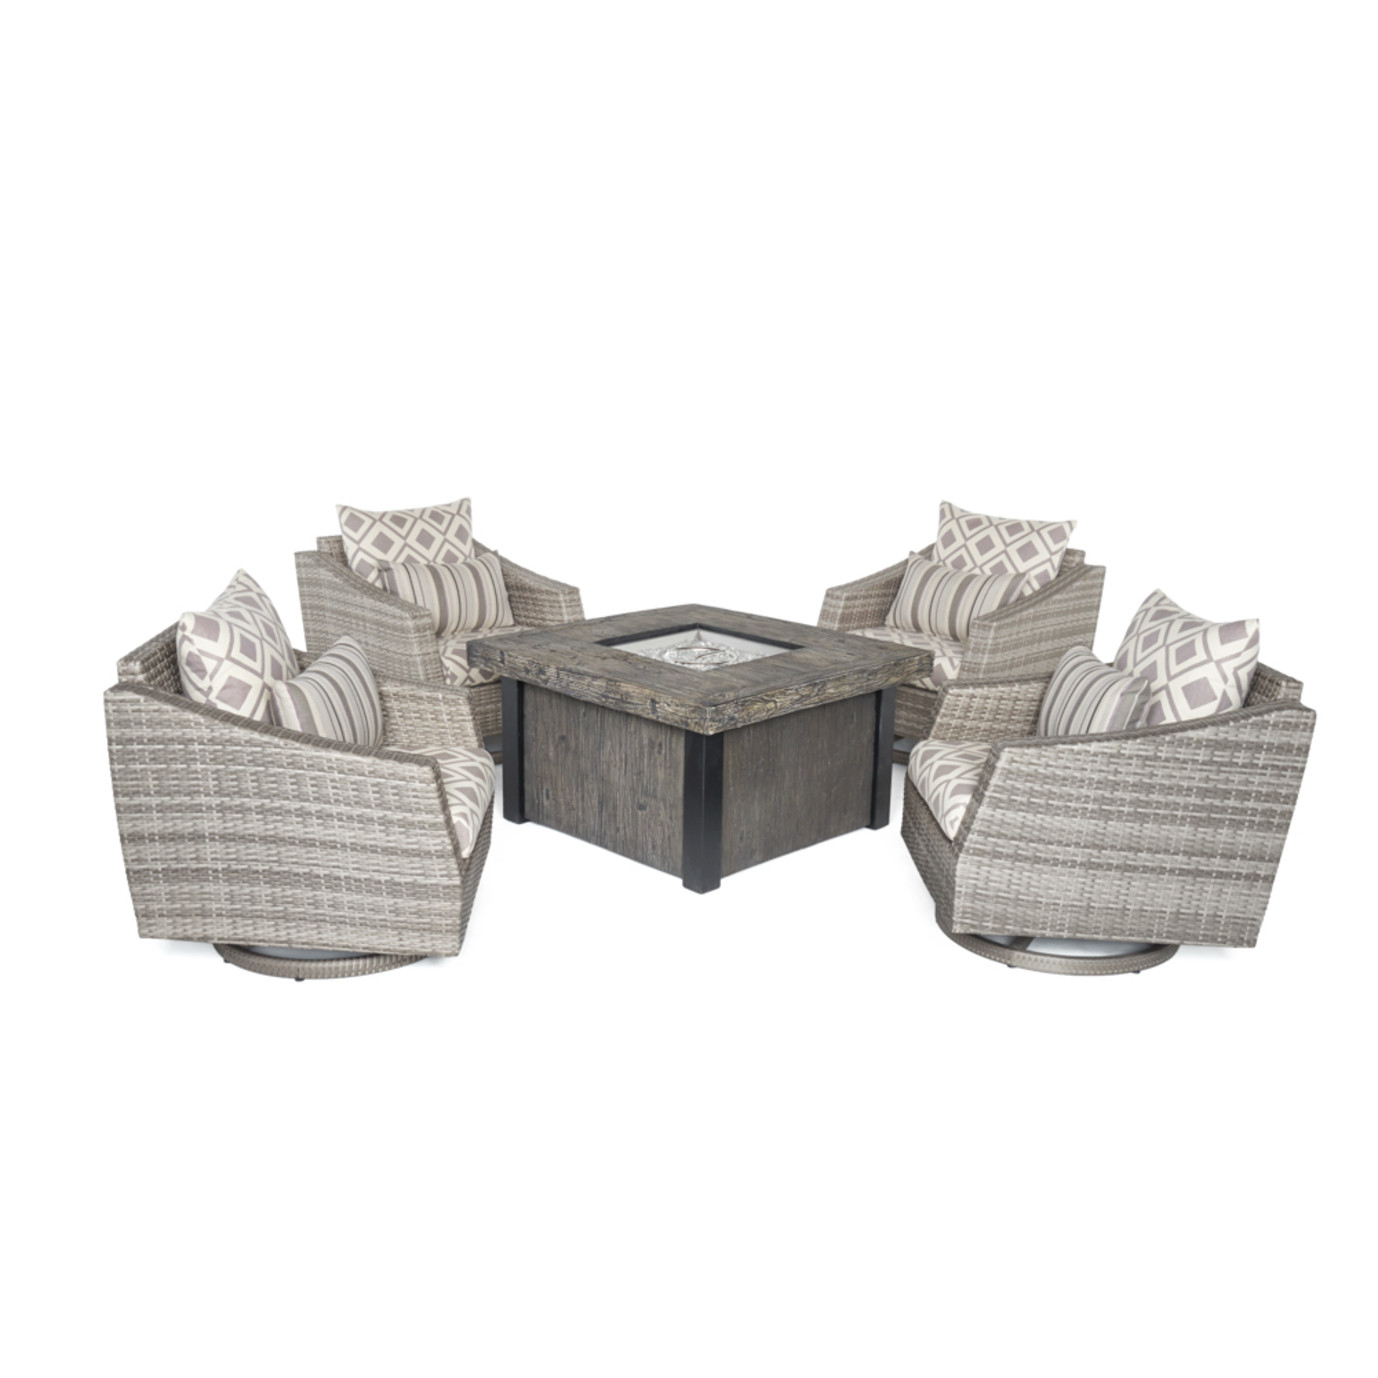 Cannes™ Deluxe 5pc Motion Fire Chat Set - Wisteria Lavender